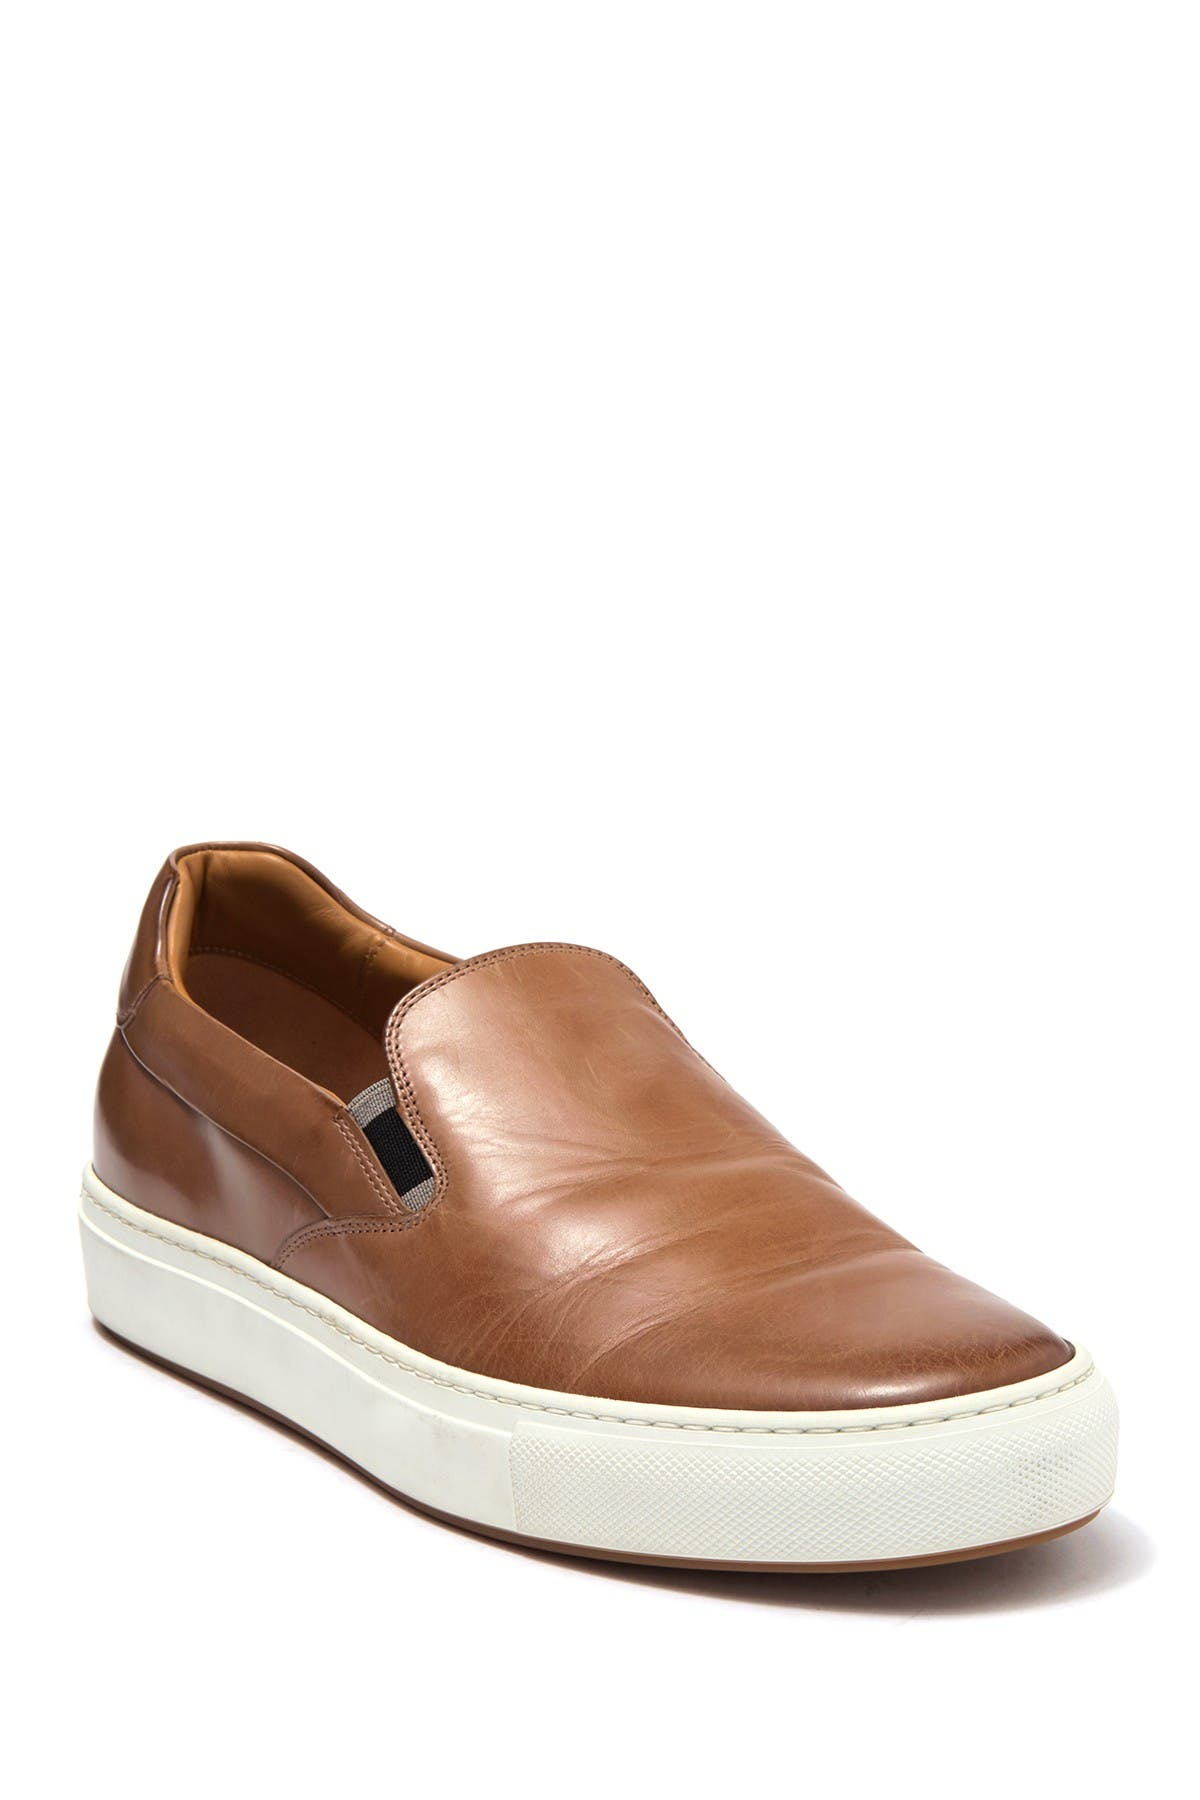 Image of BOSS Mirage Leather Slip-On Sneaker